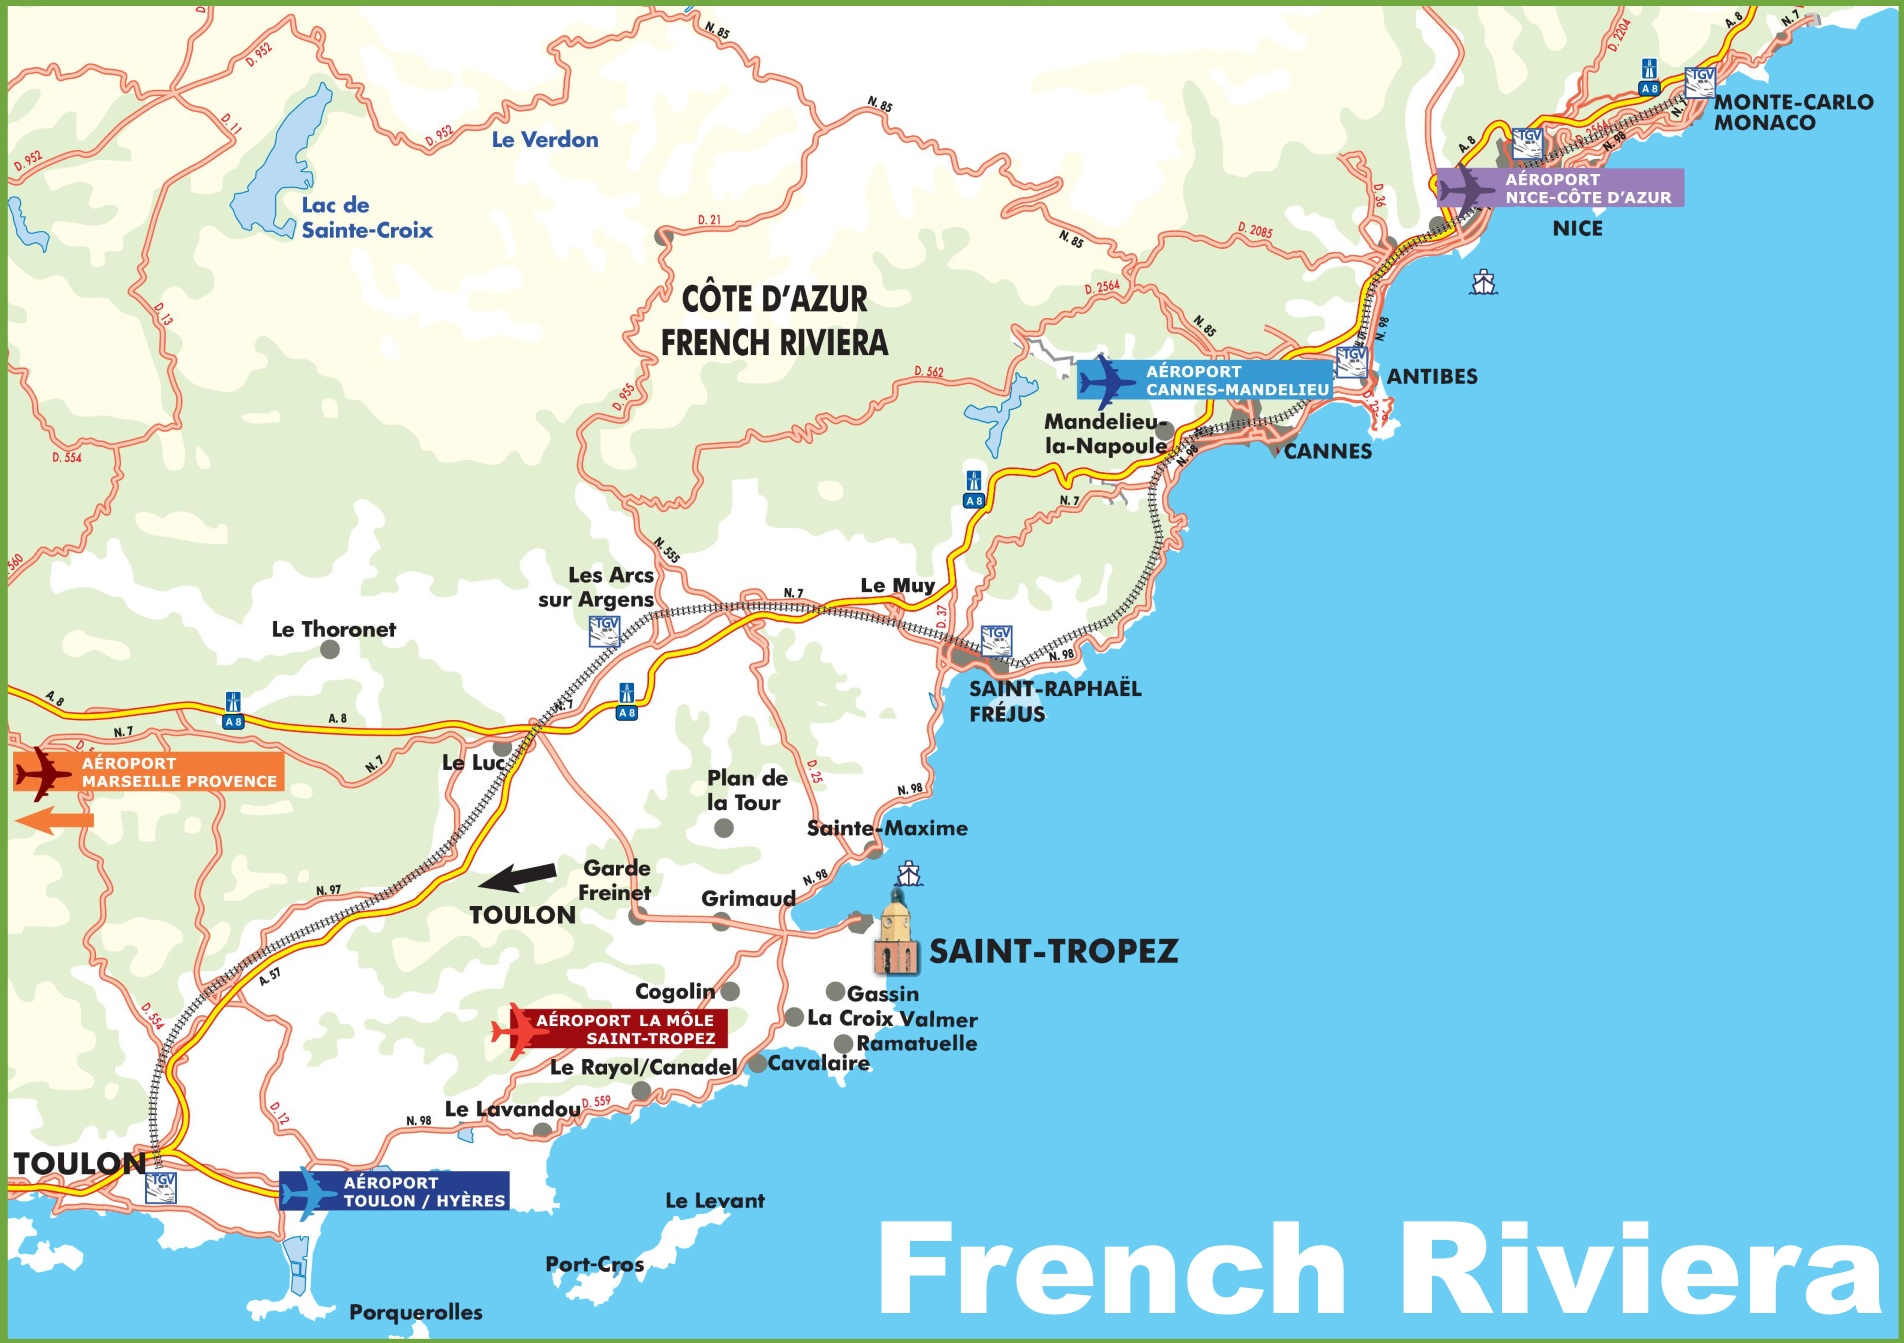 French Riviera Map French Riviera Maps | France | Maps of French Riviera (Côte d'Azur) French Riviera Map